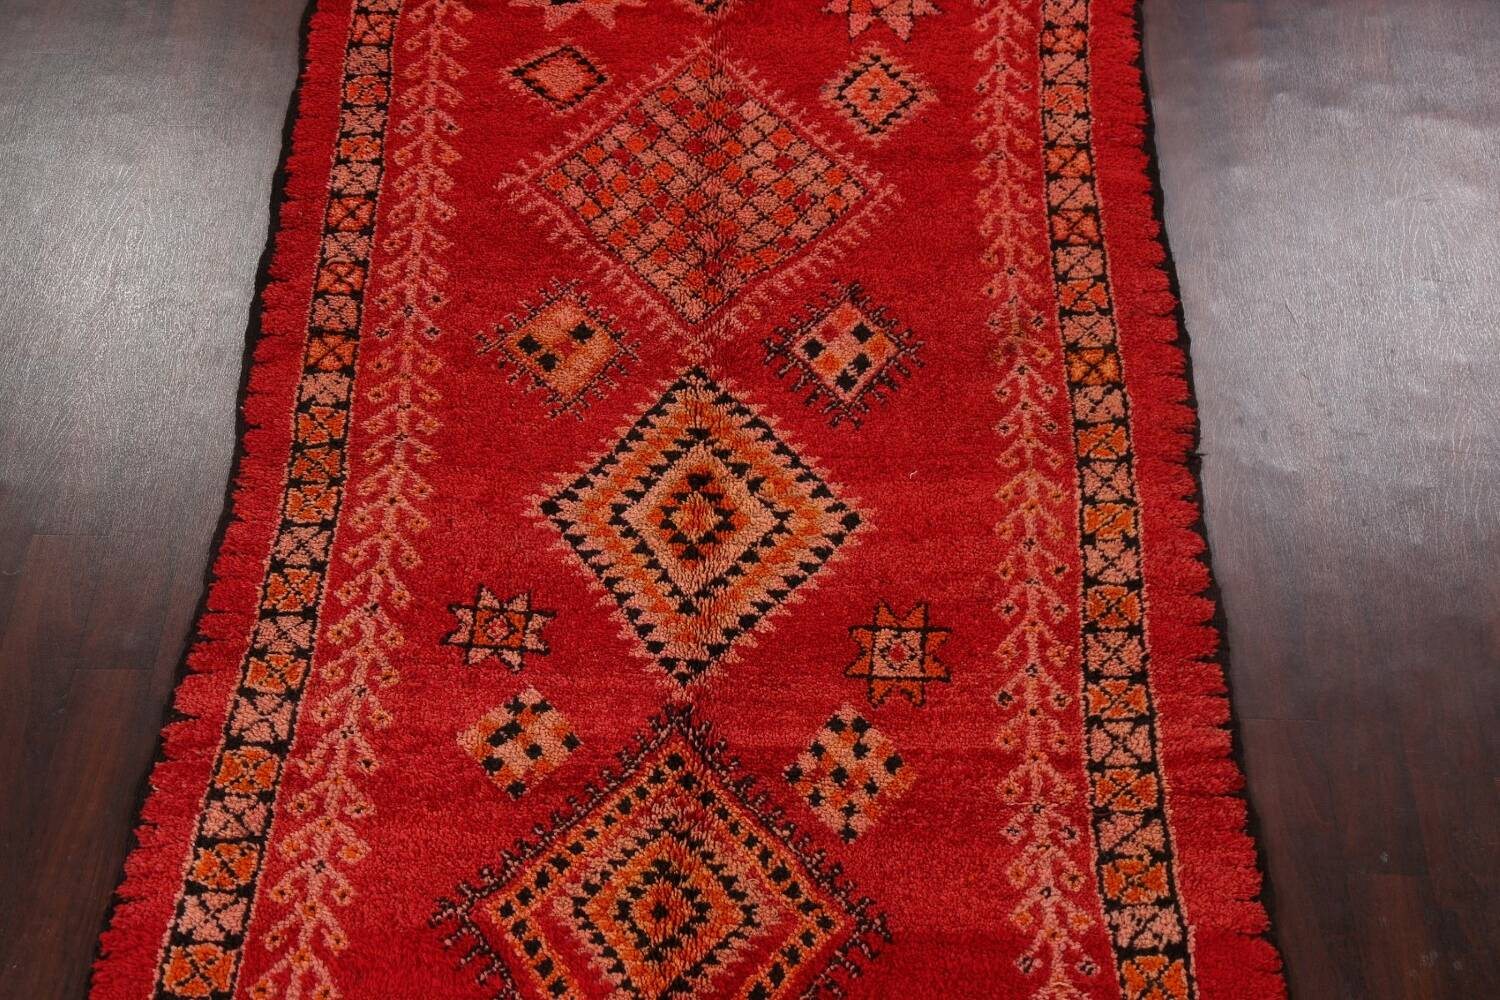 Red Moroccan Berber Area Rug 6x11 image 3